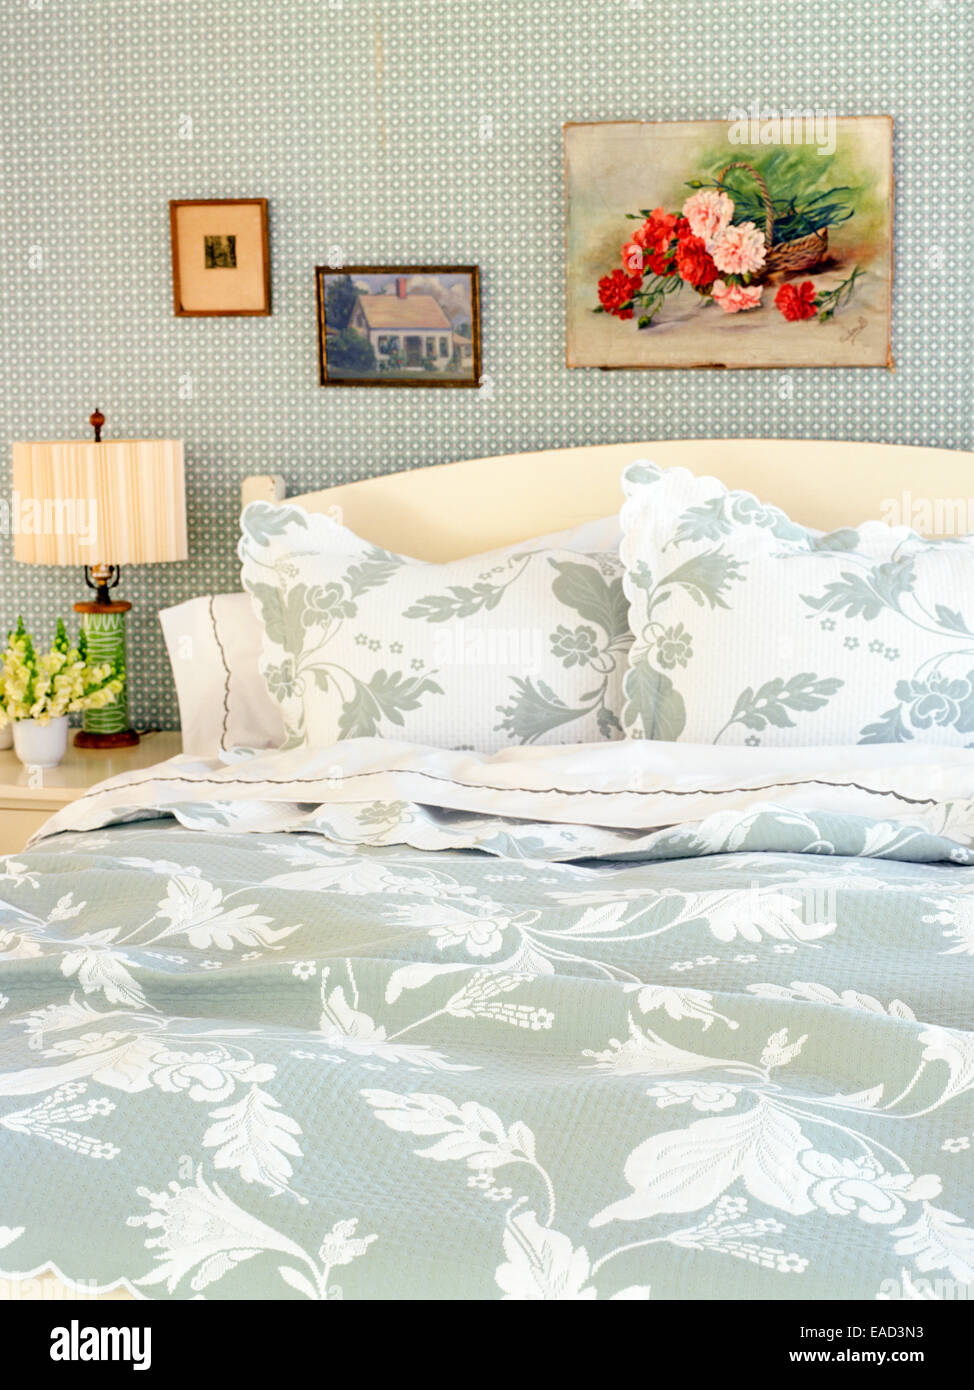 Bed with floral patterned blankets and pillows - Stock Image